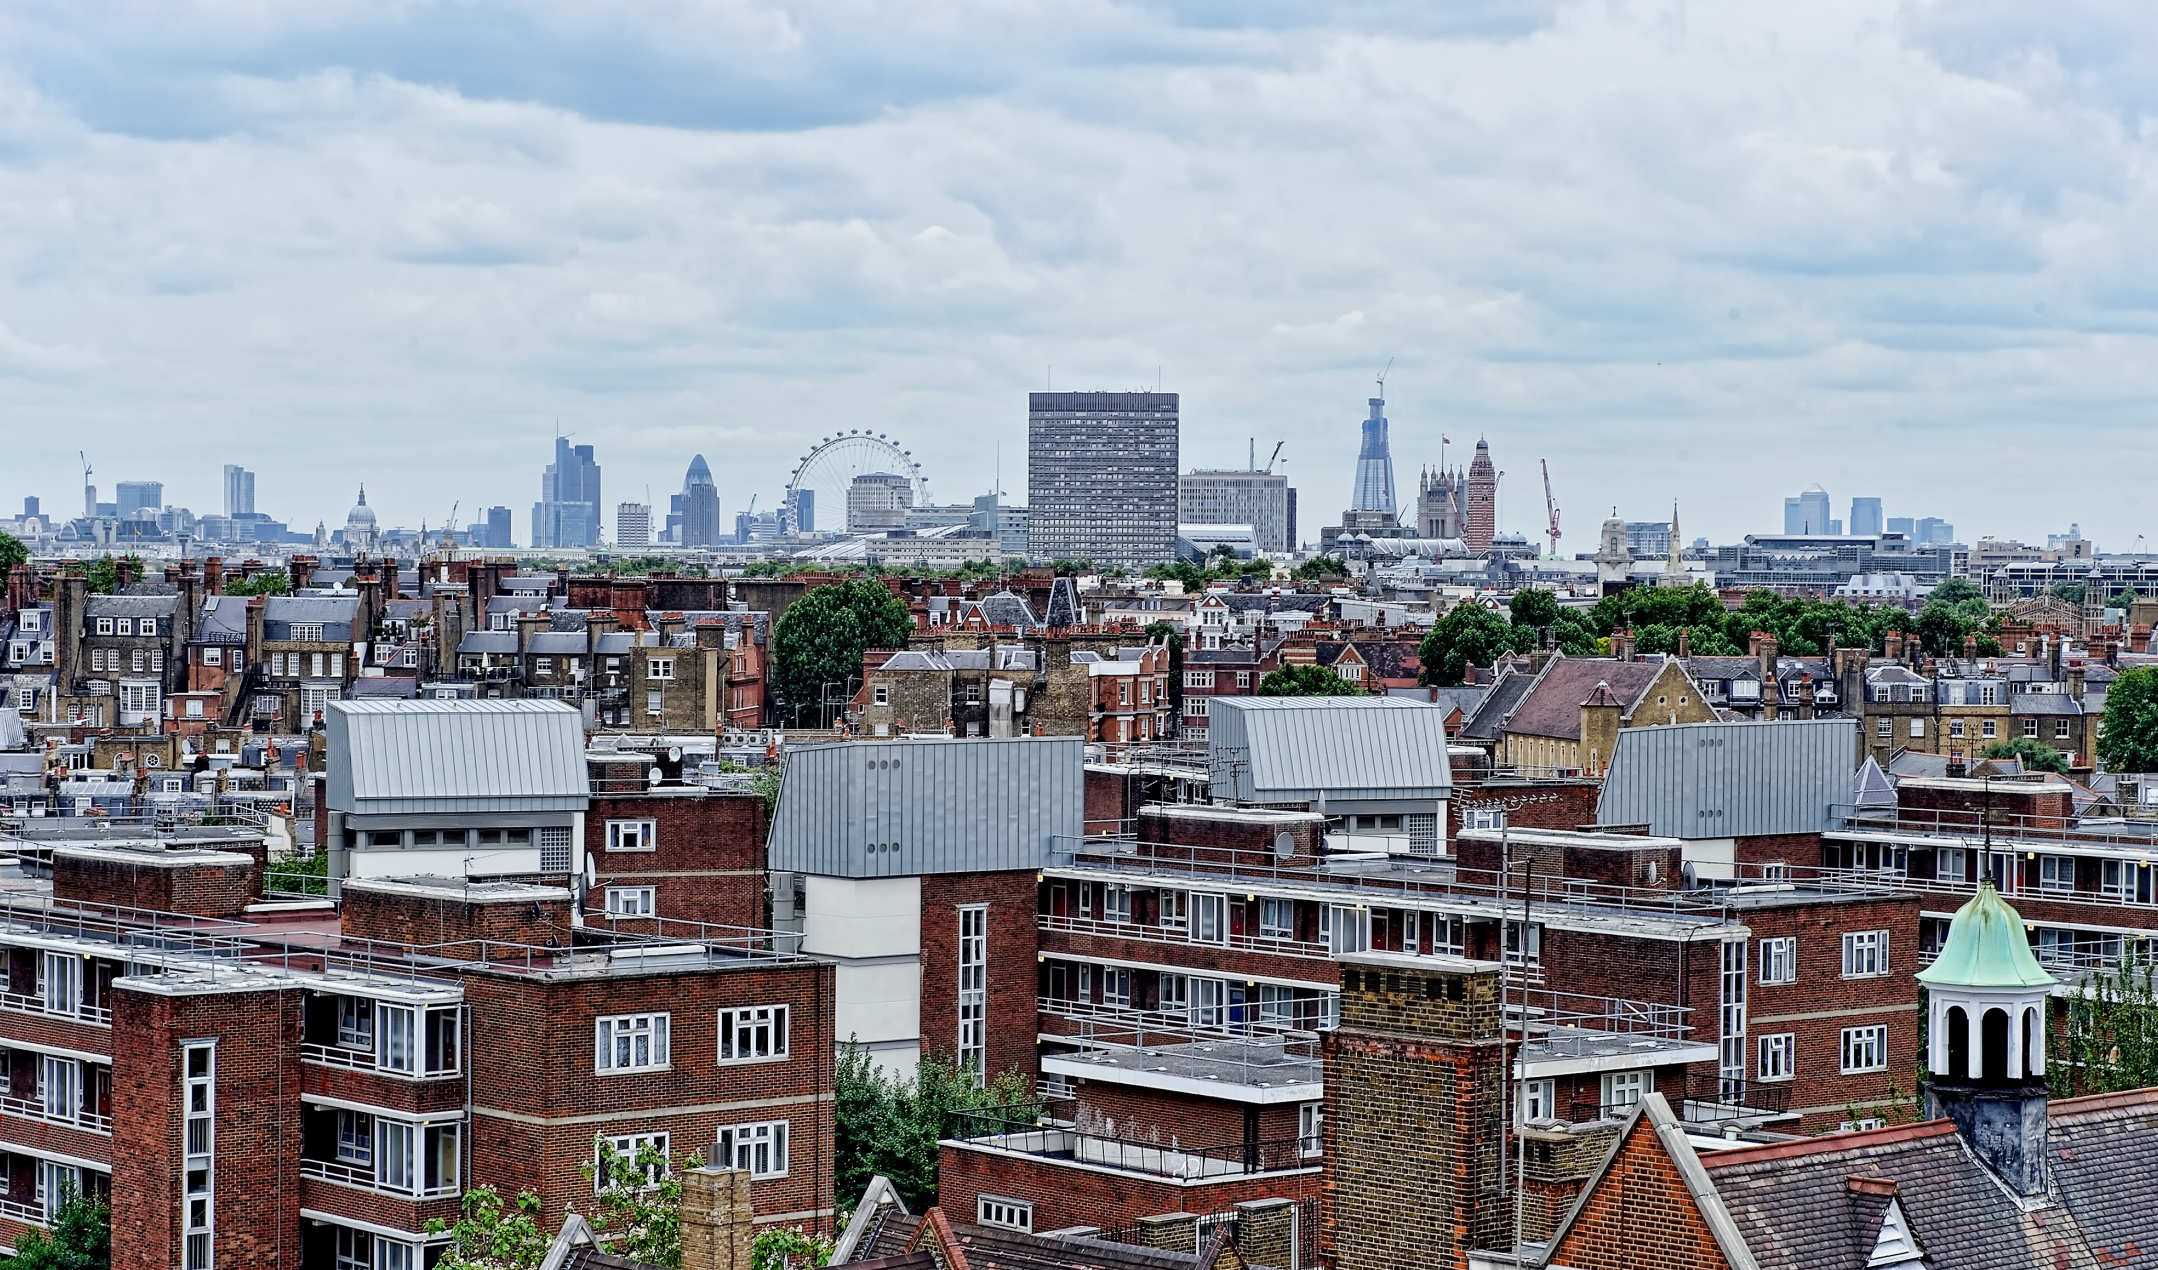 Views over London's skyline from Chelsea Cloisters